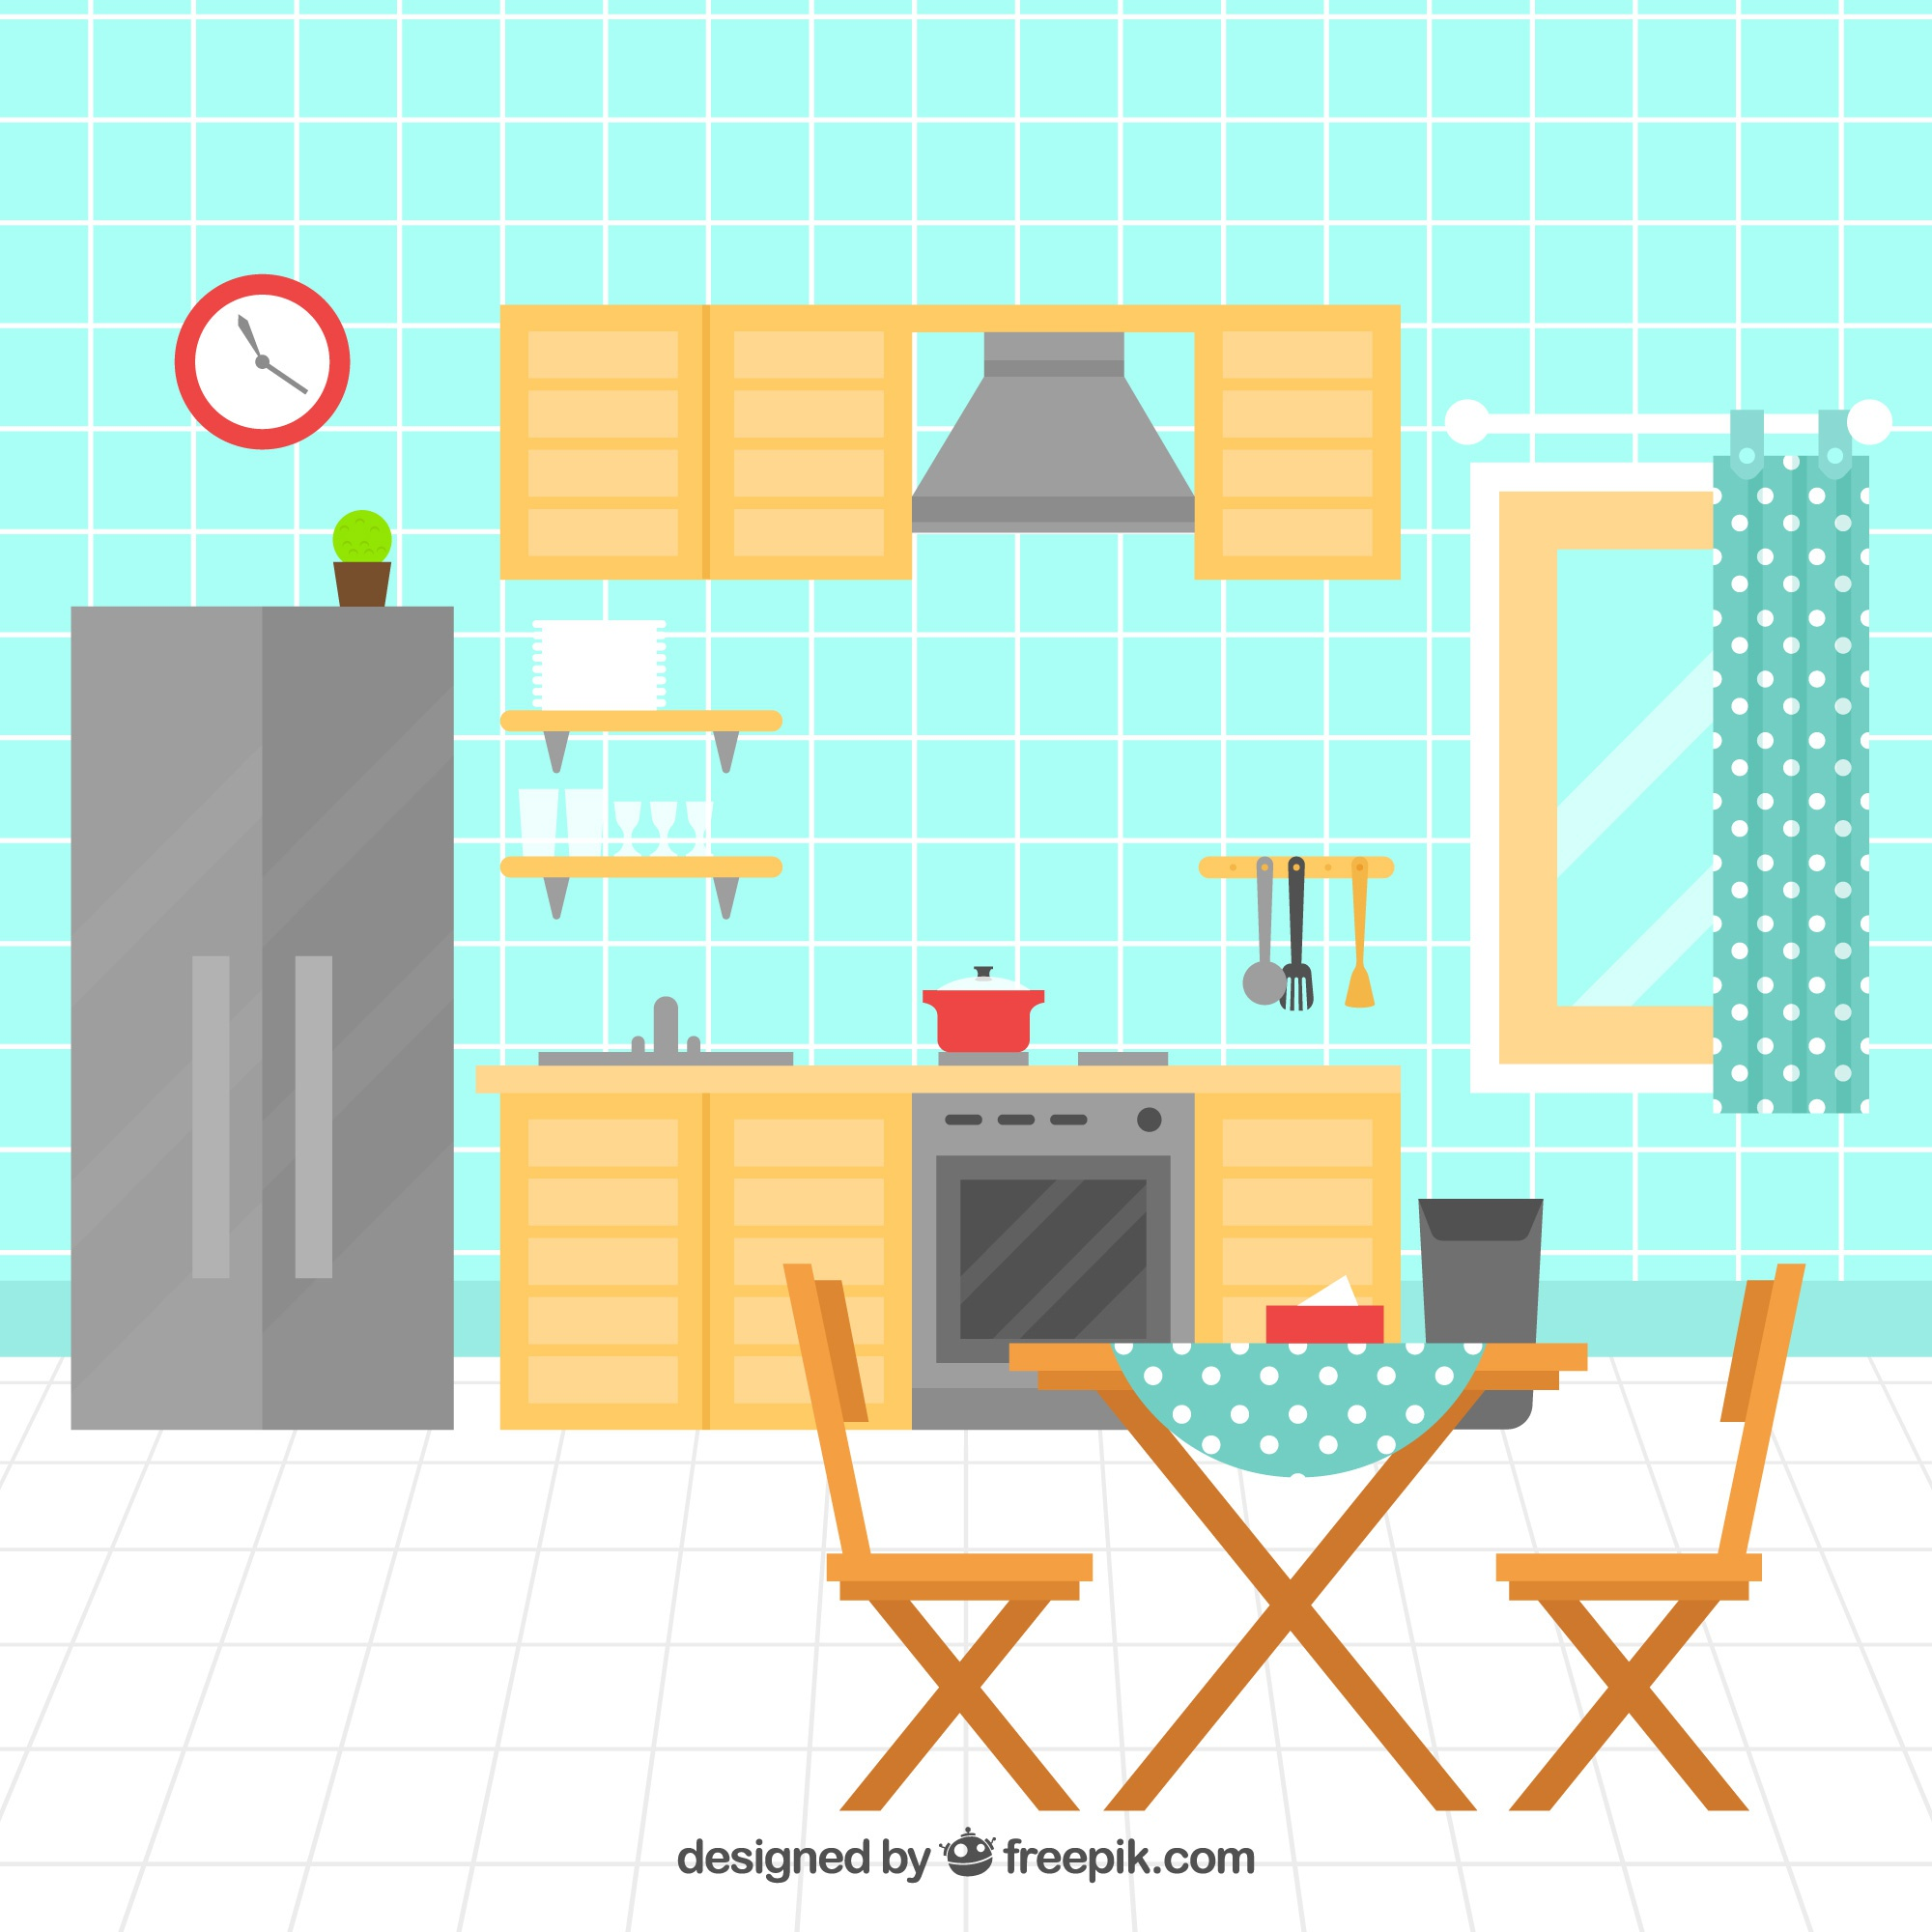 Flat kitchen with electrical appliances and wooden furniture